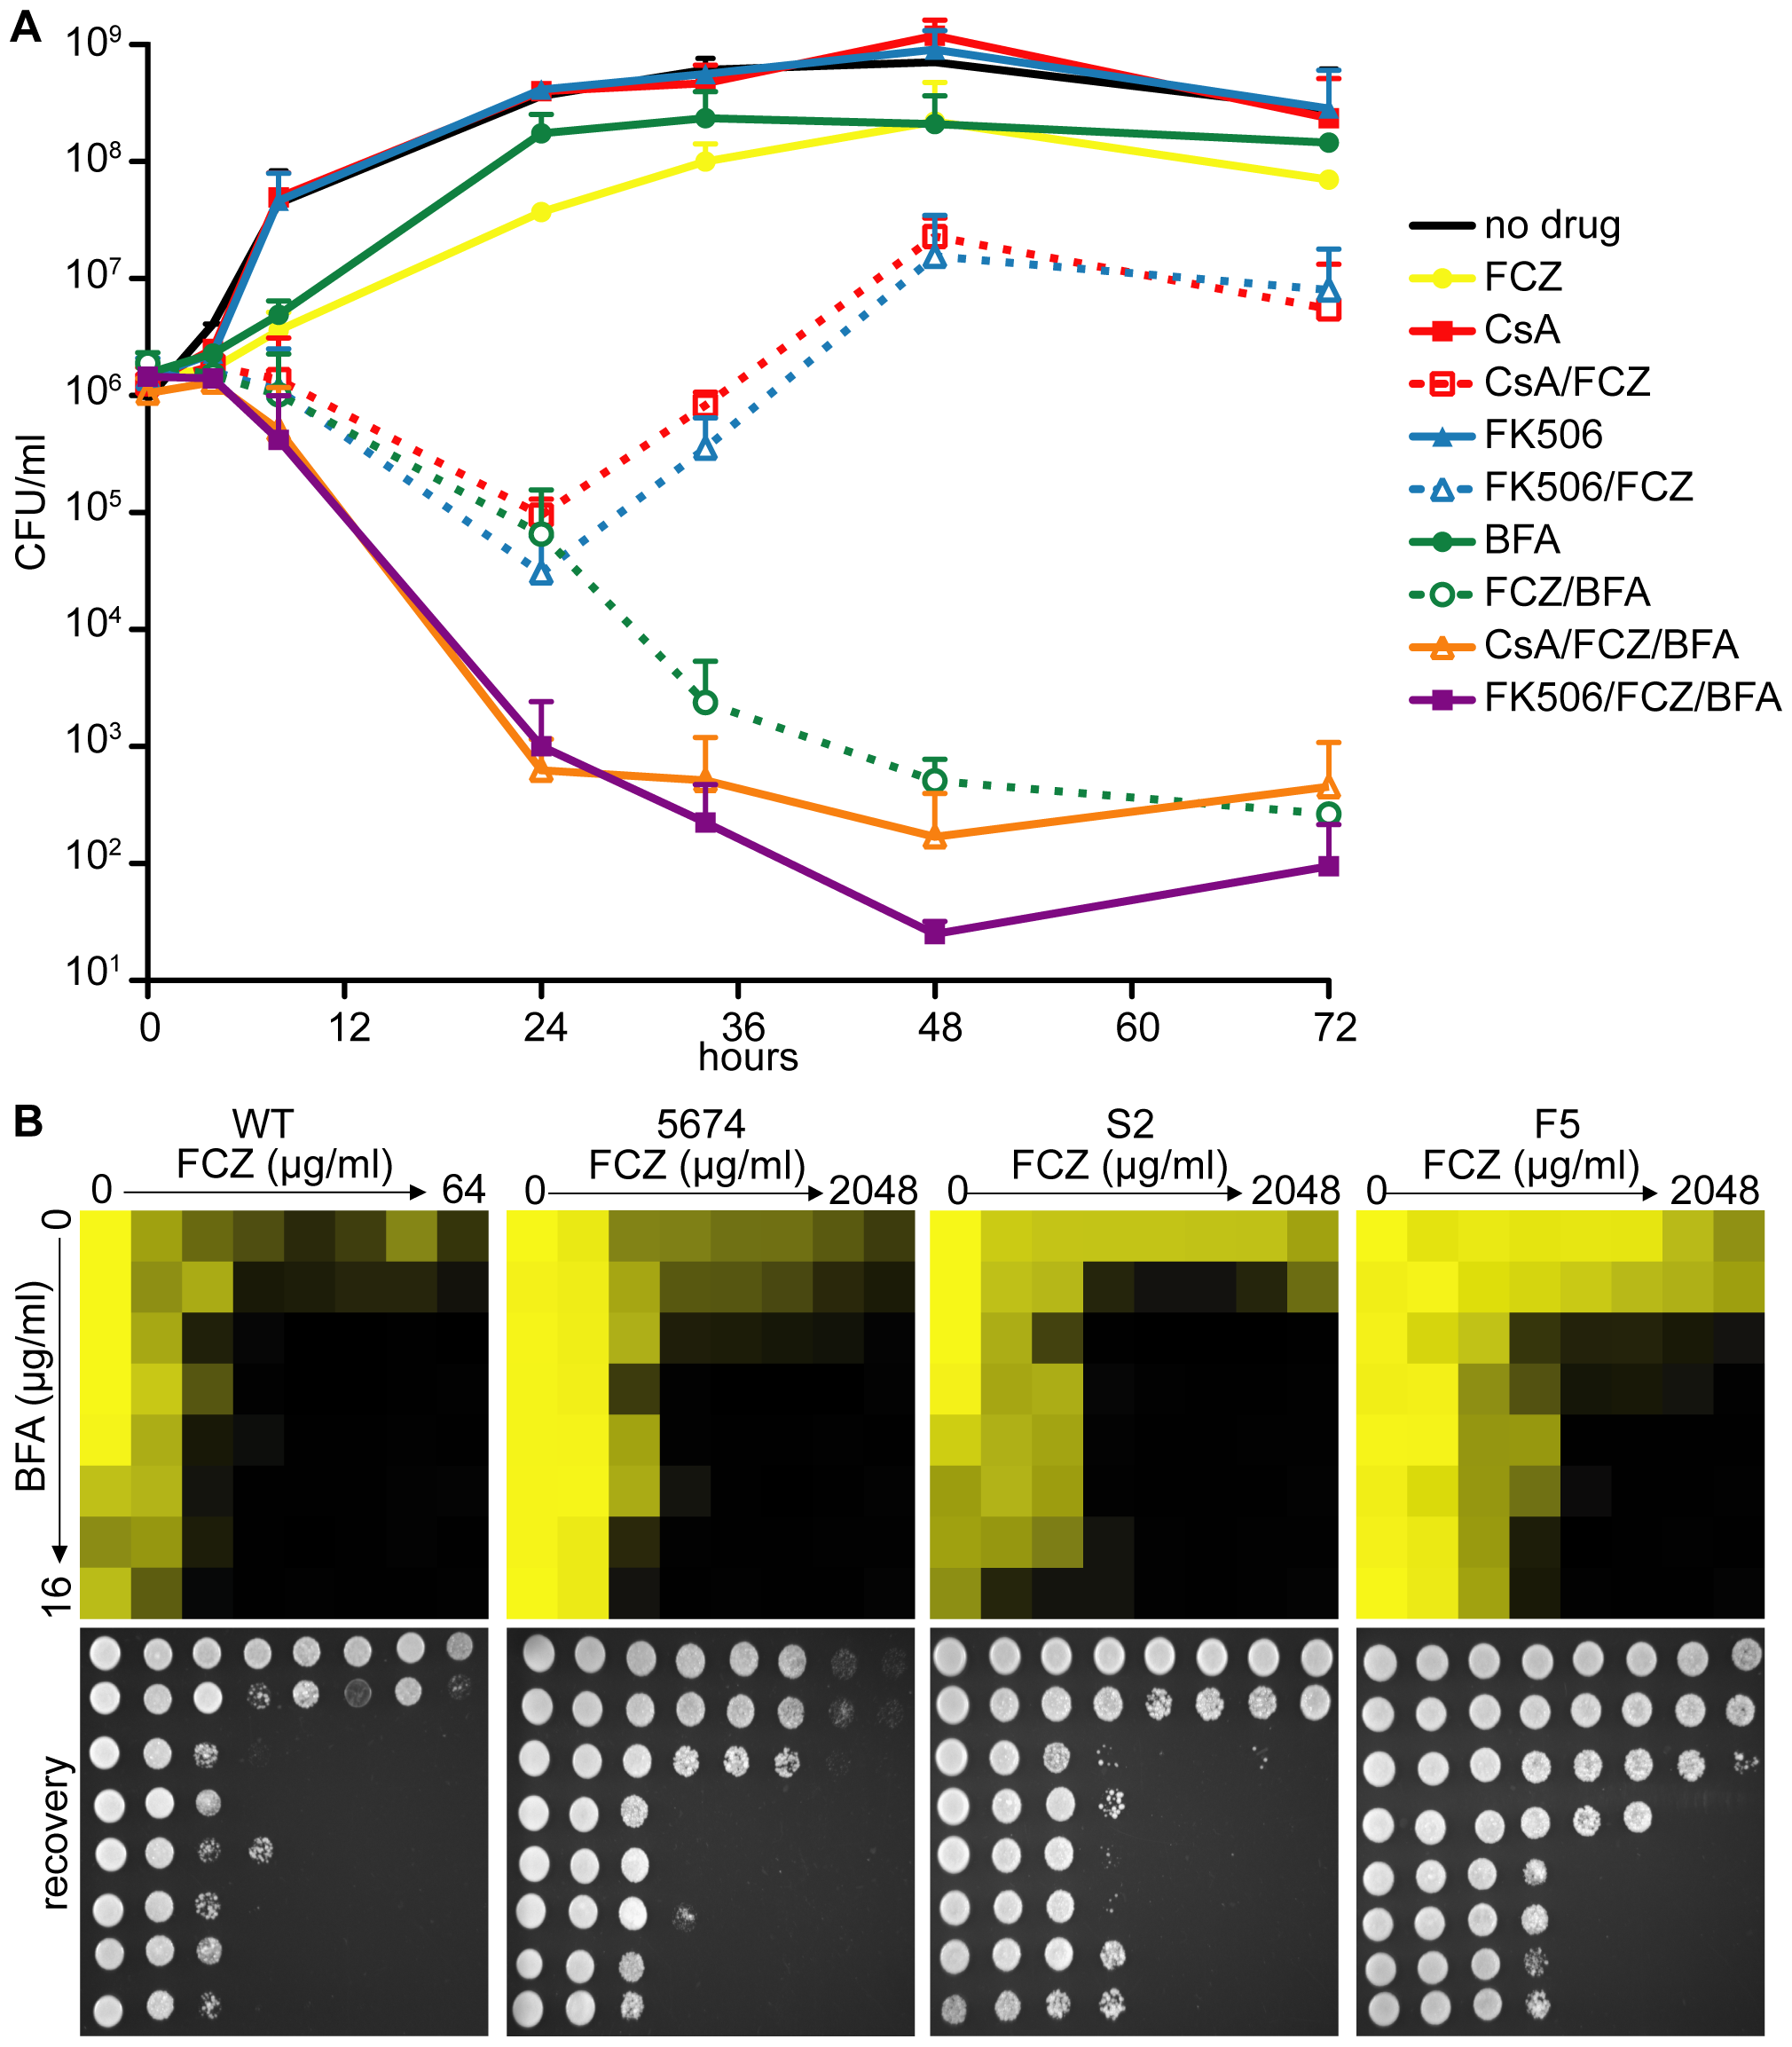 Pharmacological inhibition of ARF cycling results in a potent, fungicidal synergy in combination with FCZ in <i>C. albicans</i>.